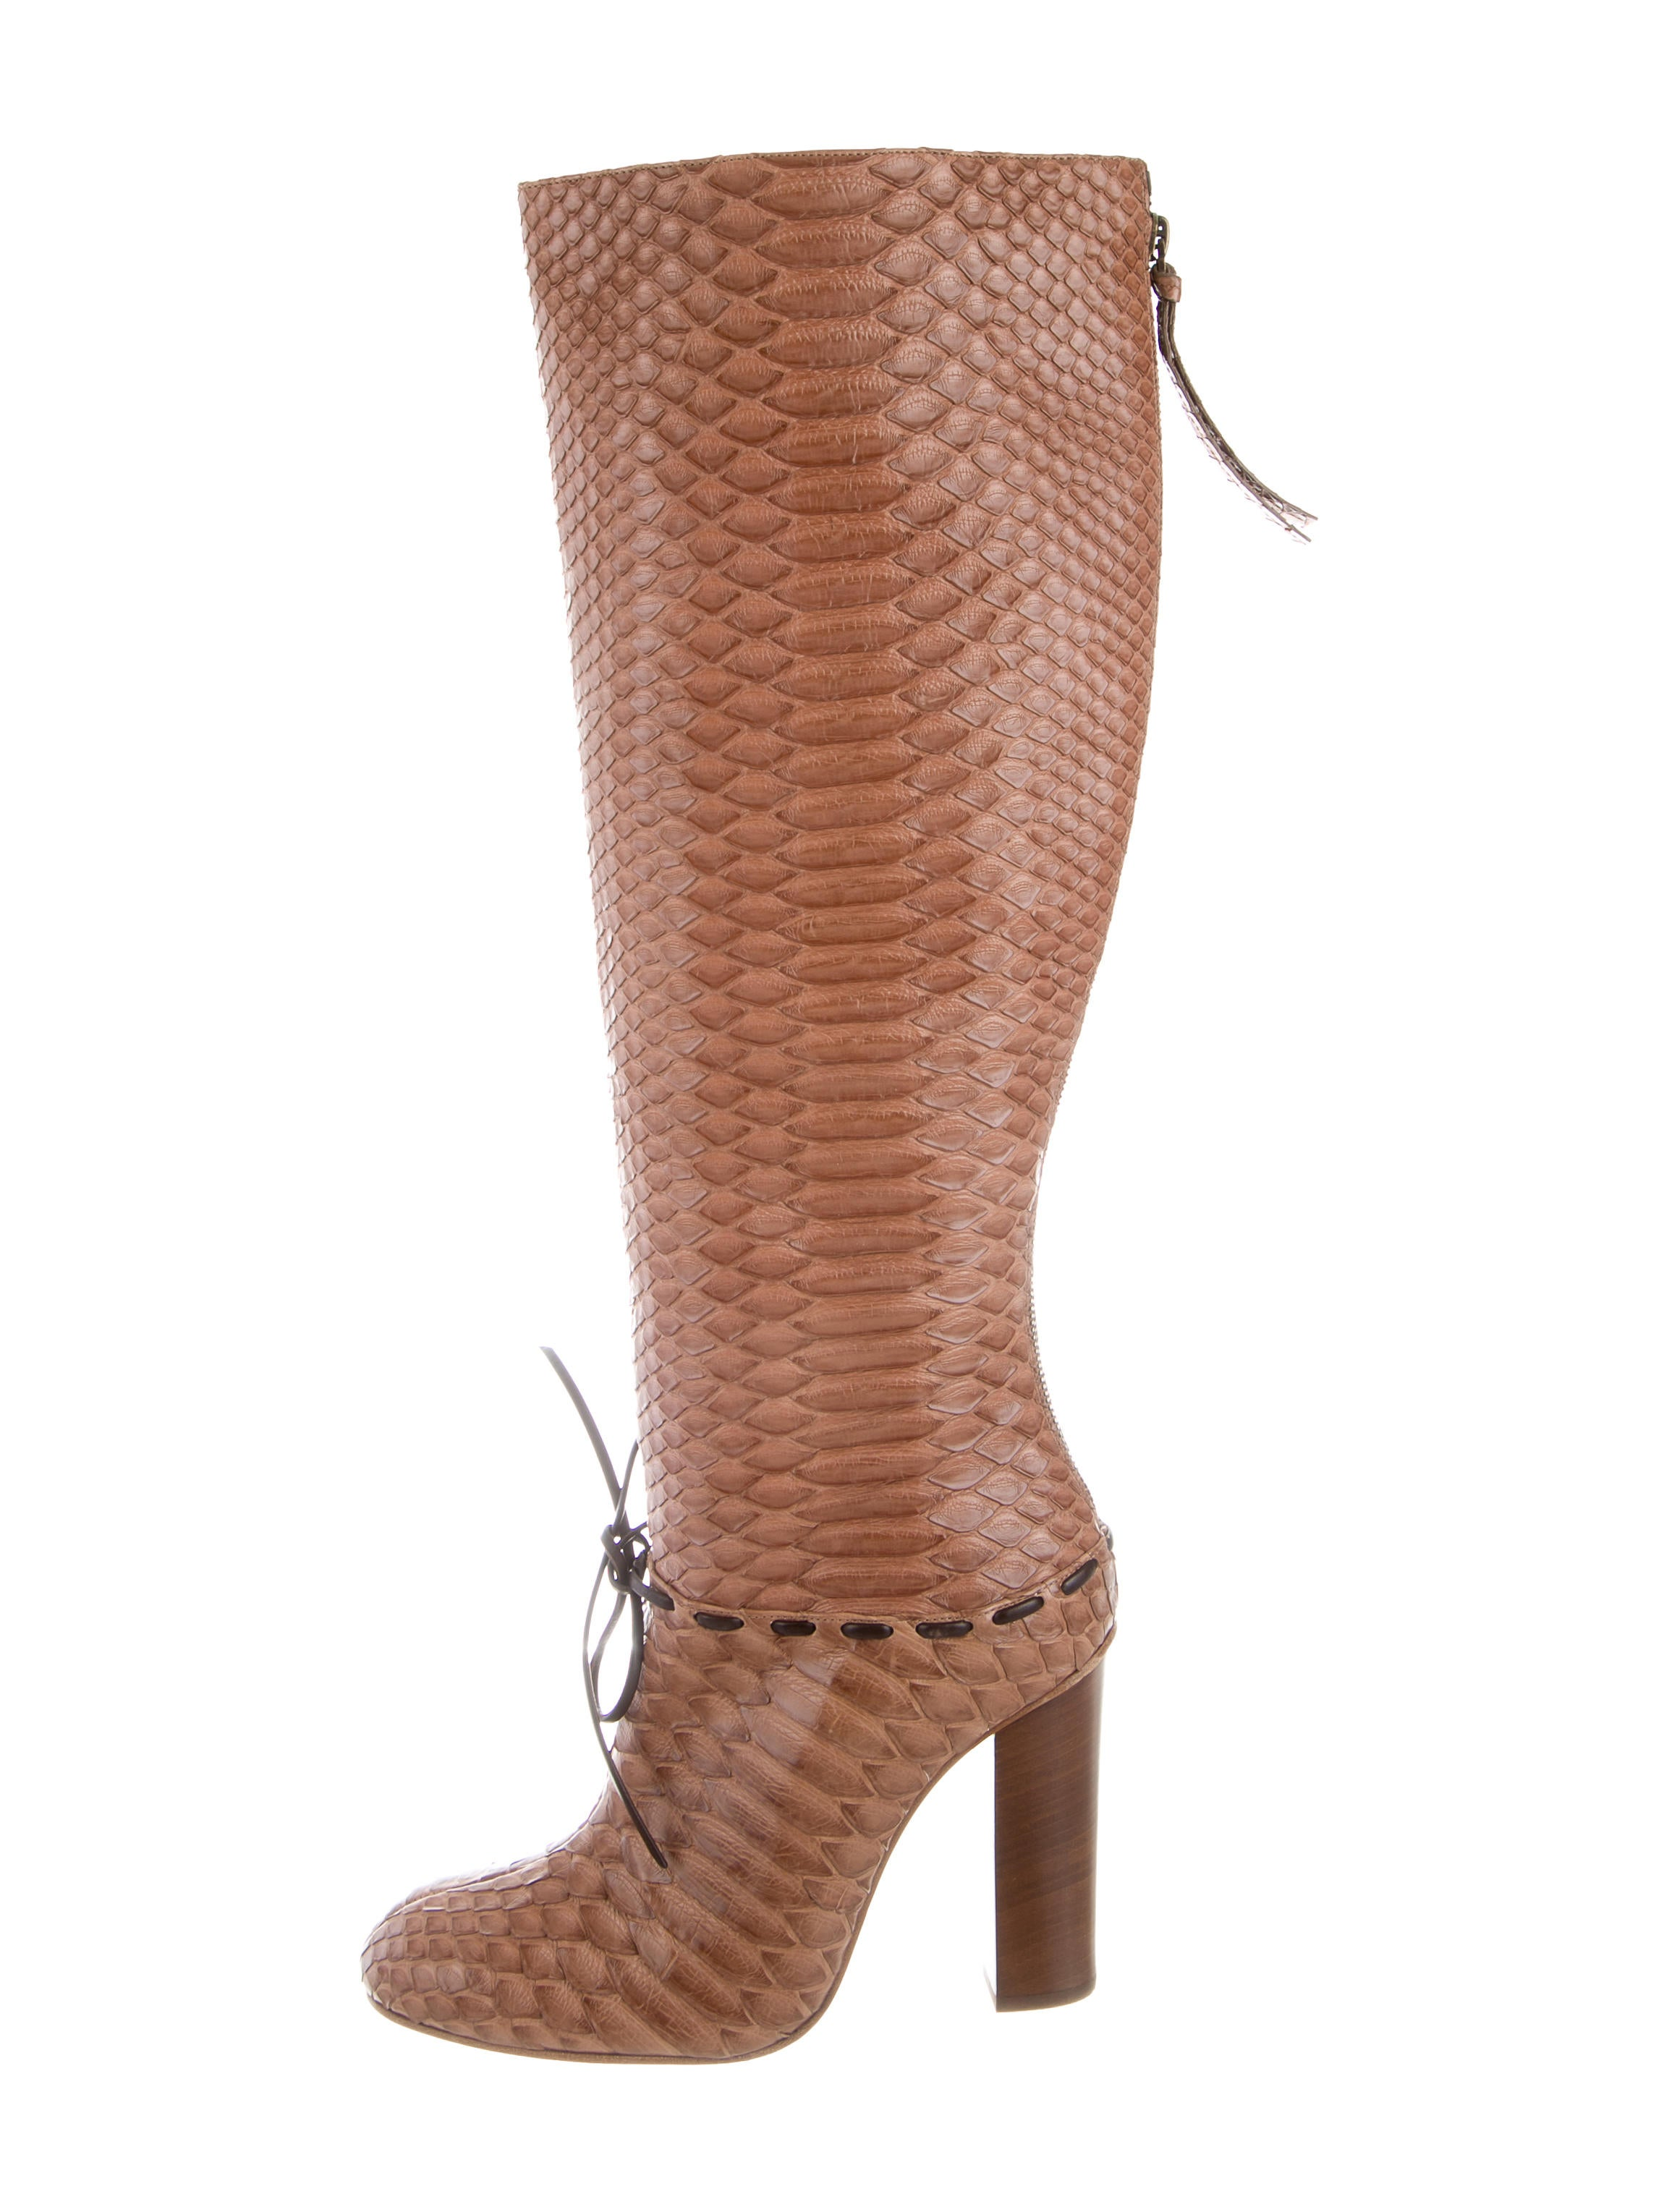 excellent cheap online Chloé Python Knee-High Boots outlet wholesale price low price fee shipping online outlet big sale top quality for sale 2kfNQlRIX